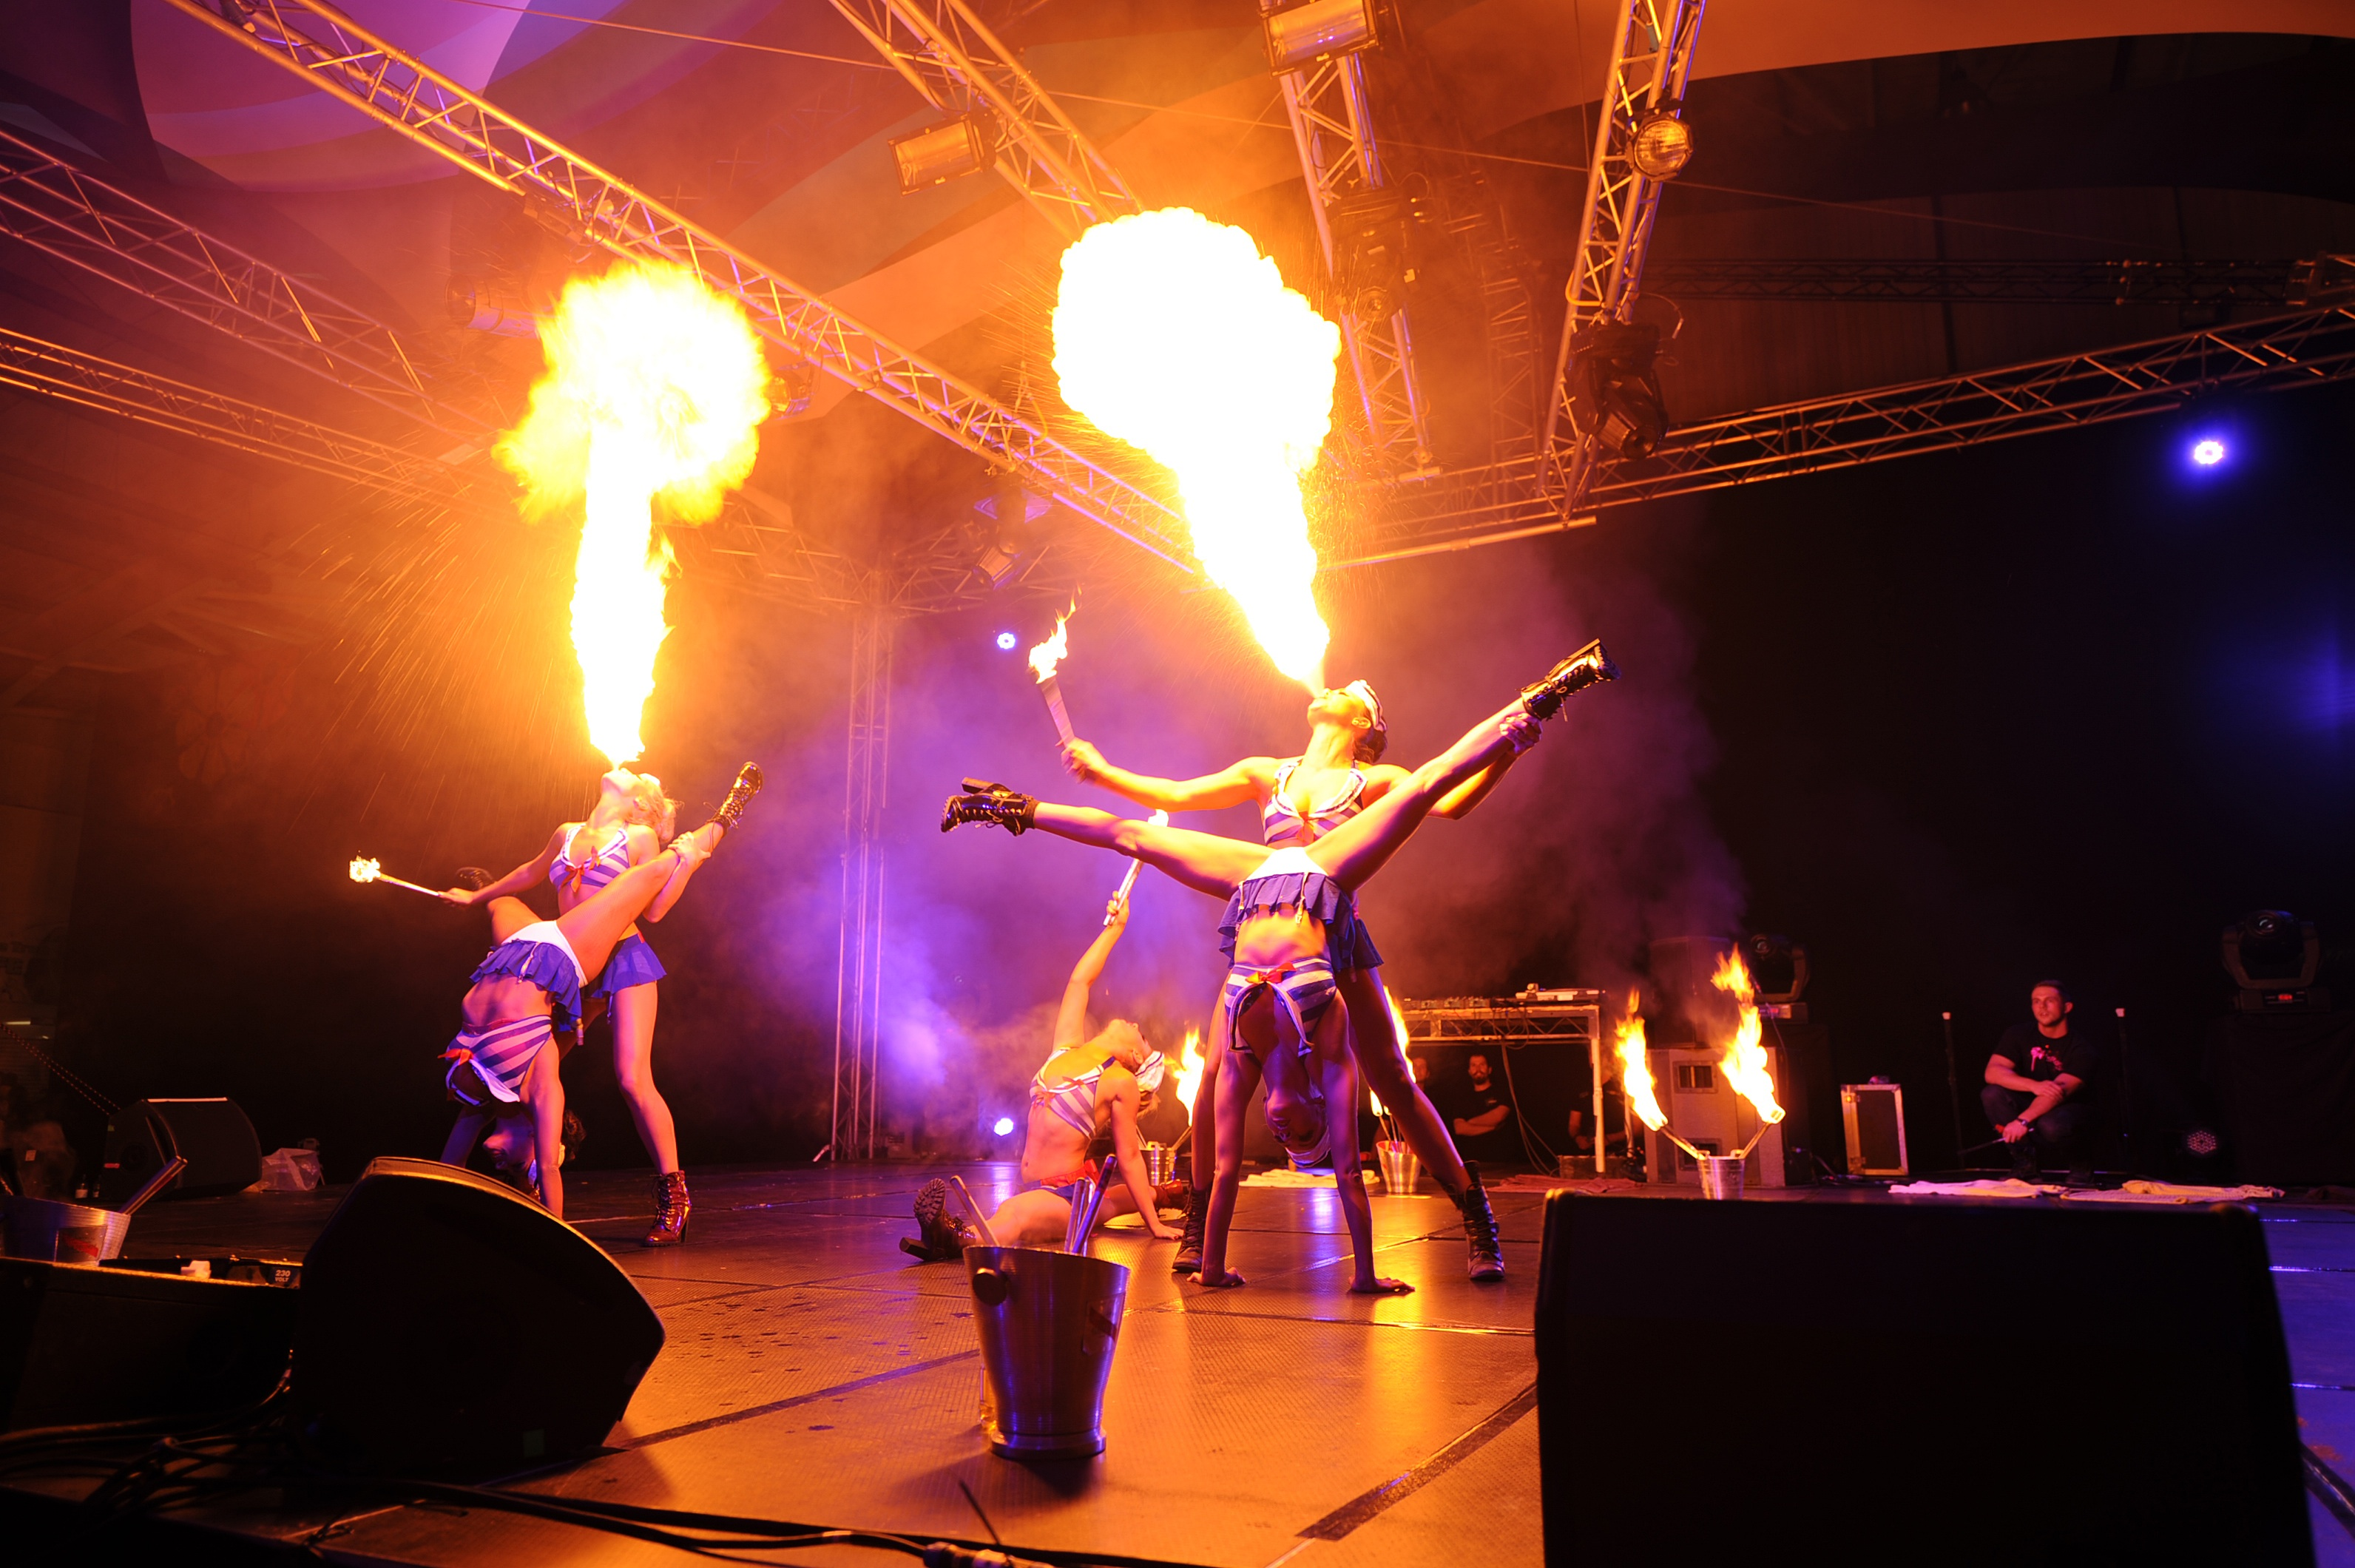 Fire show act